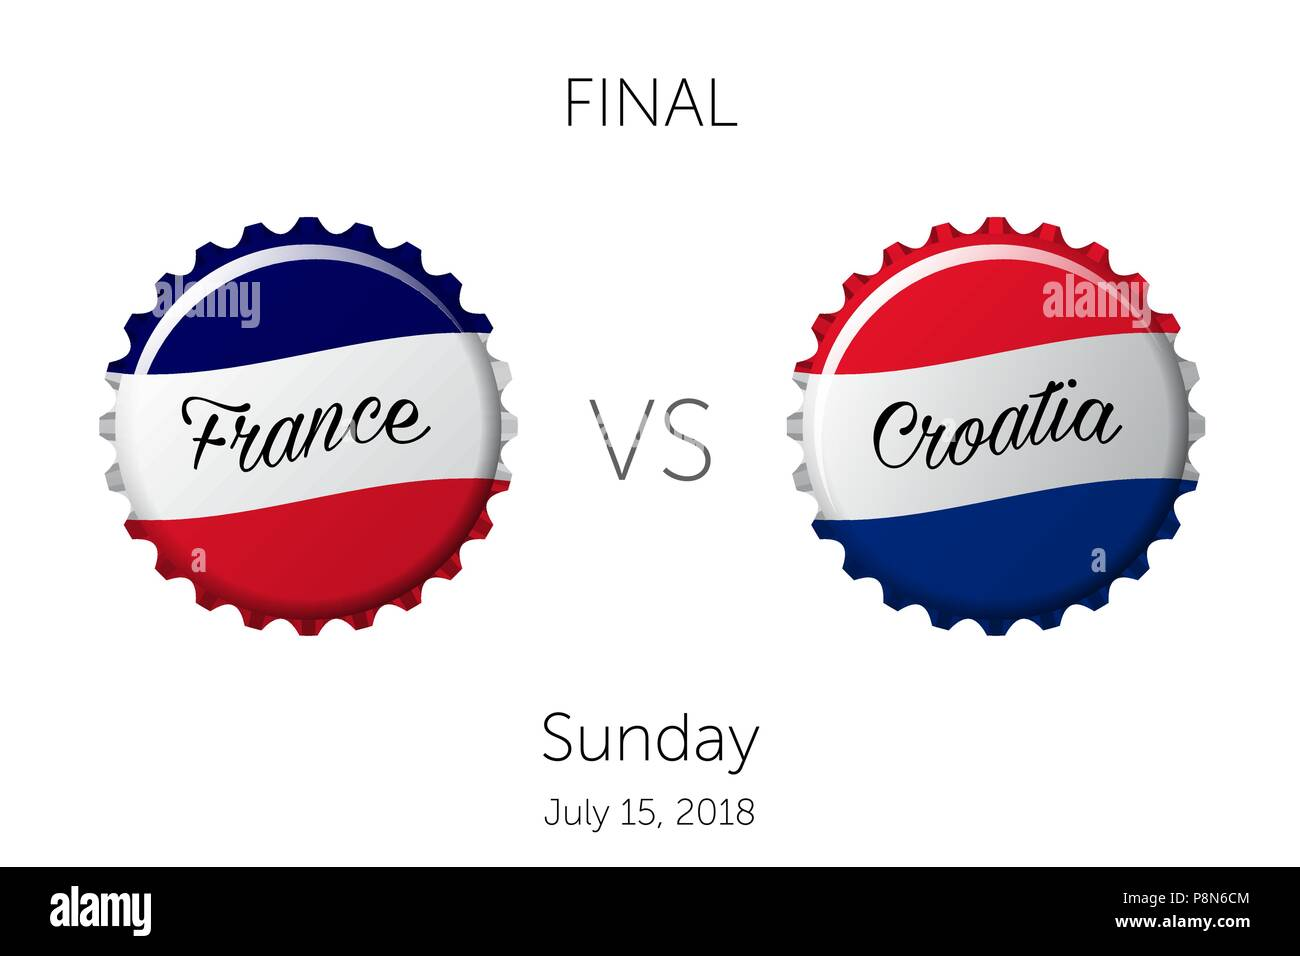 Soccer championship | Final - France VS Croatia - July 15, 2018 - Stock Vector